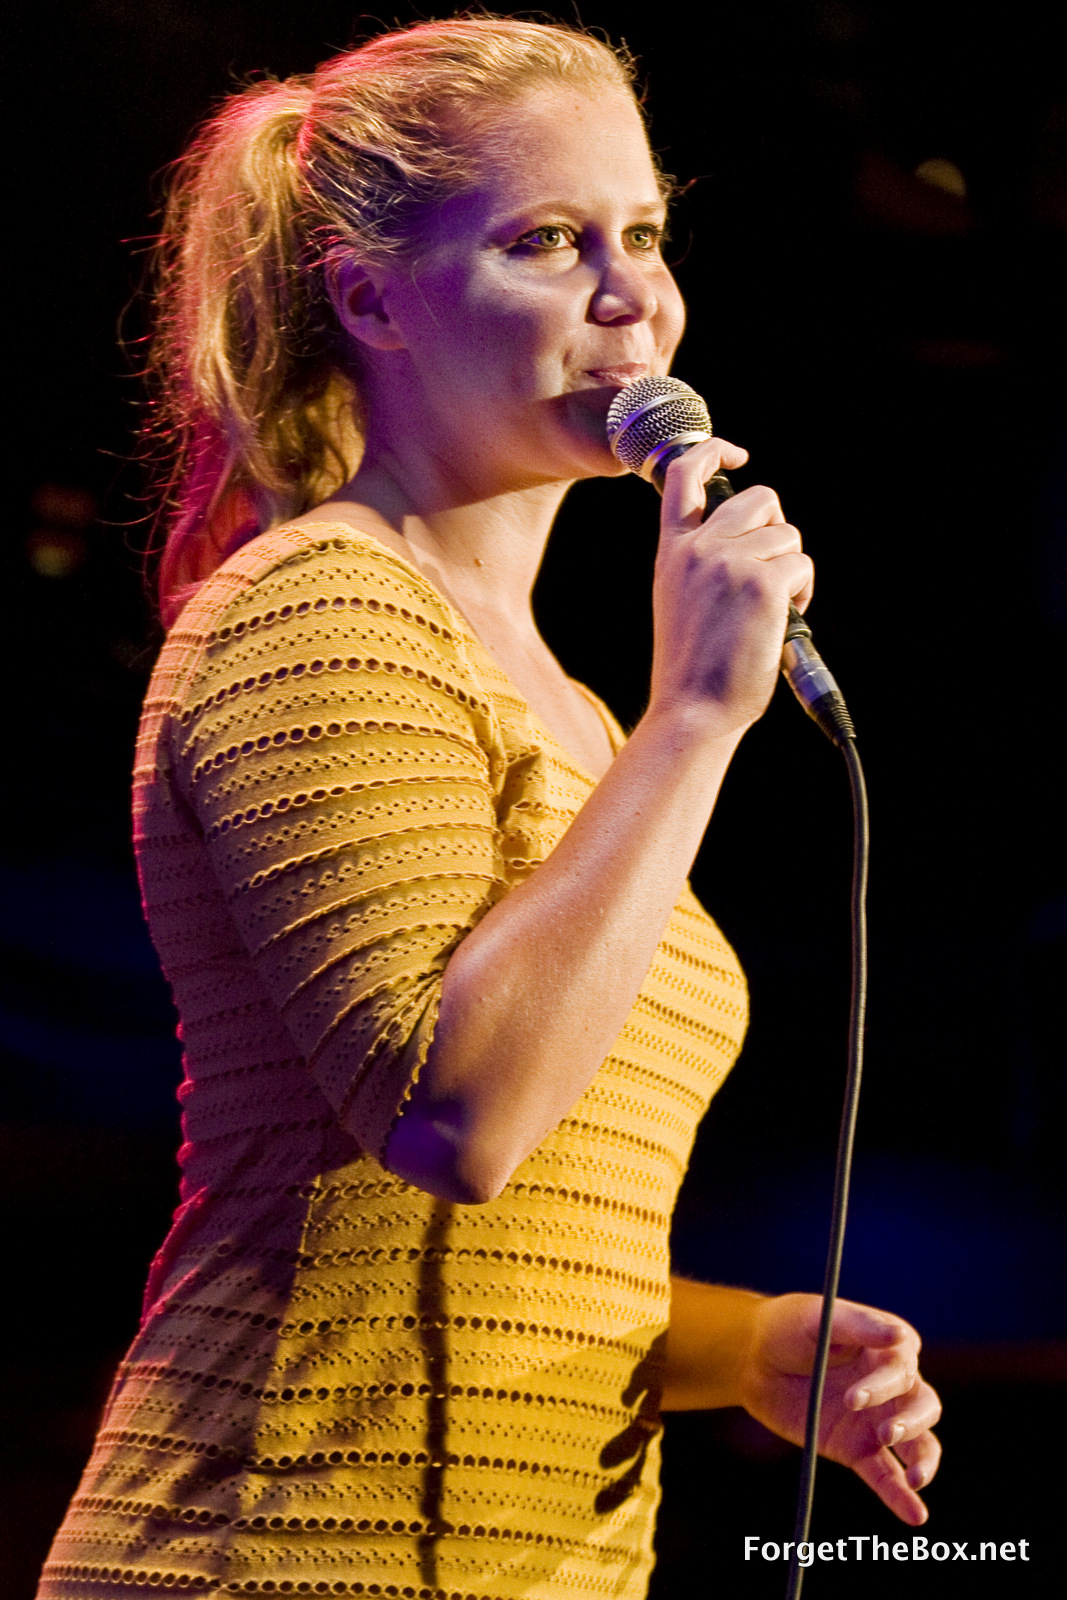 Amy Schumer performs at Katacombes on July 26, 2012